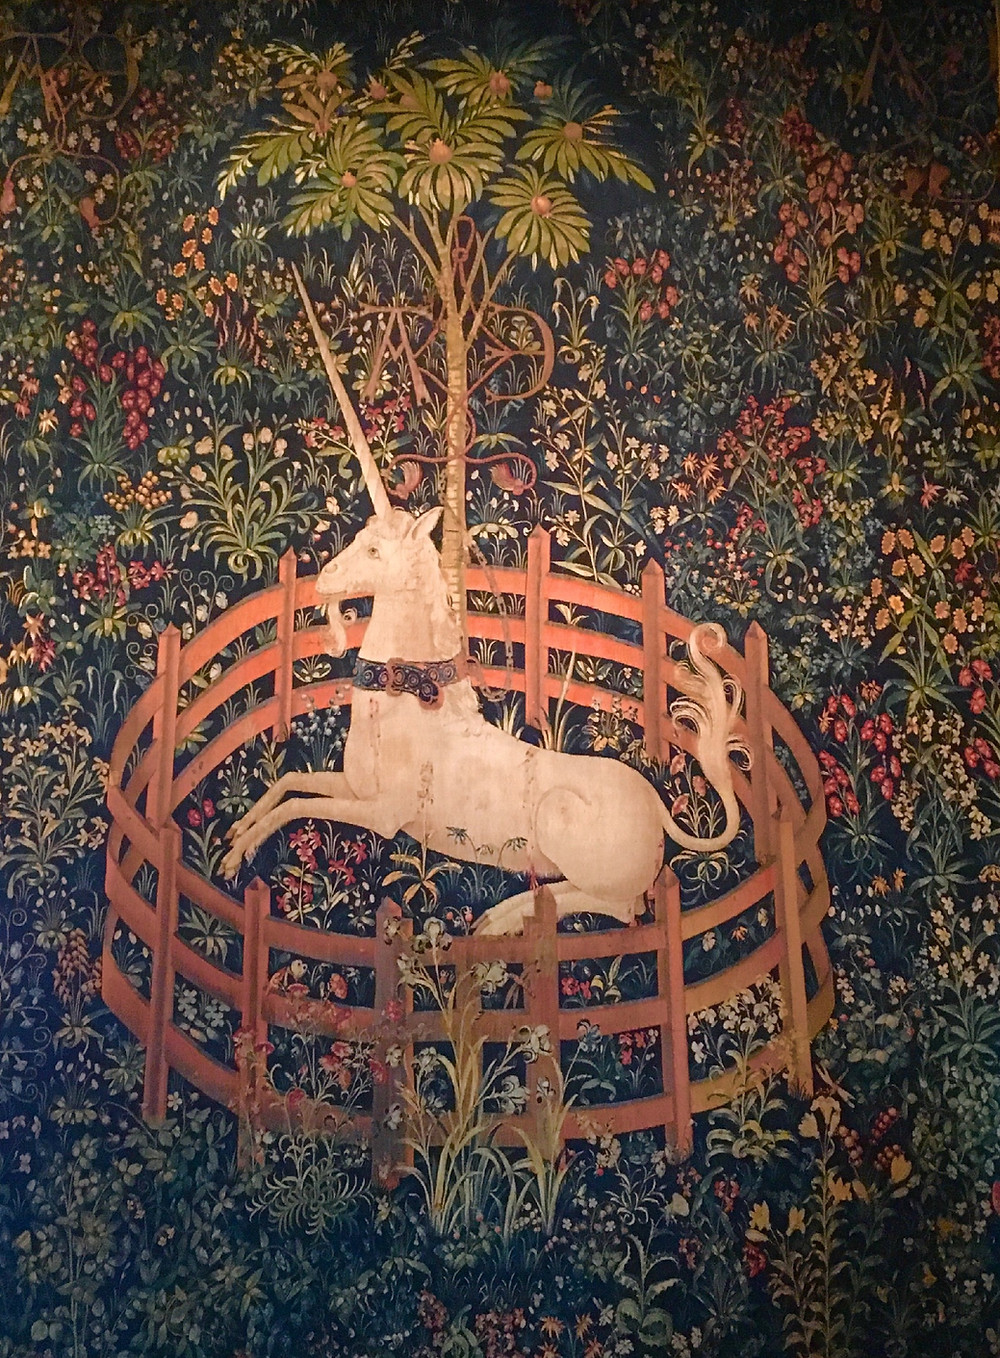 The Unicorn in Captivity tapestry at the Met Cloisters